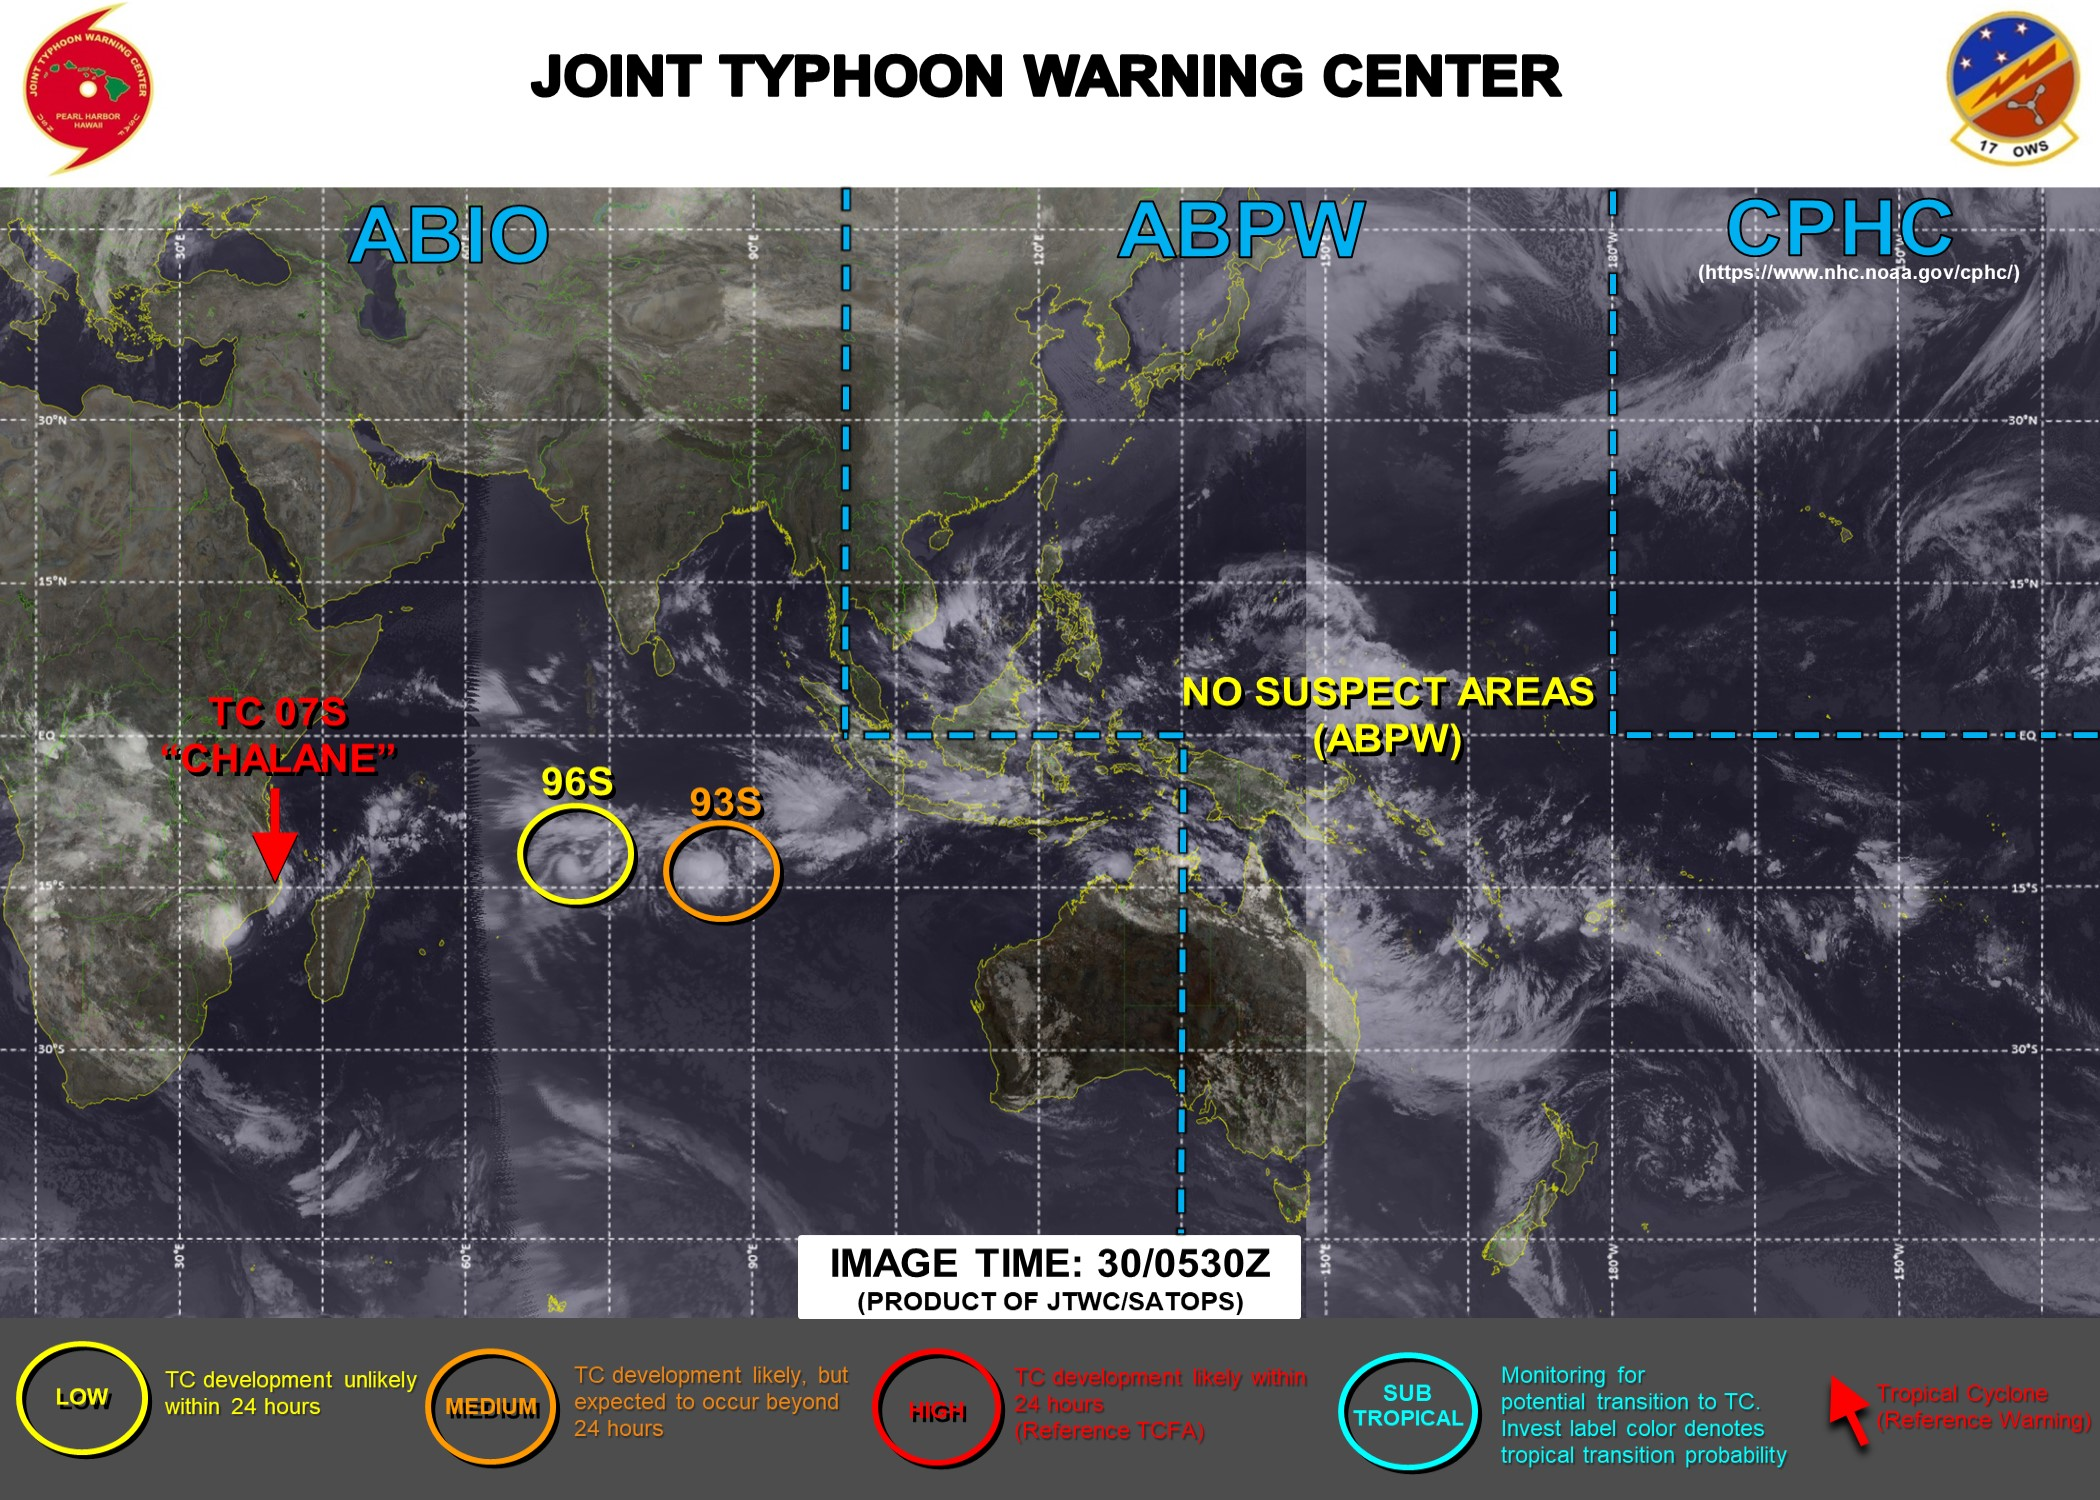 TC 07S: OVER-LAND AND WEAKENING. 93S: MEDIUM CHANCES OF SUSTAINED 35KNOTS WINDS NEAR THE CENTER WITHIN 24HOURS. 96S: LOW CHANCES. UPDATE AT 30/06UTC.